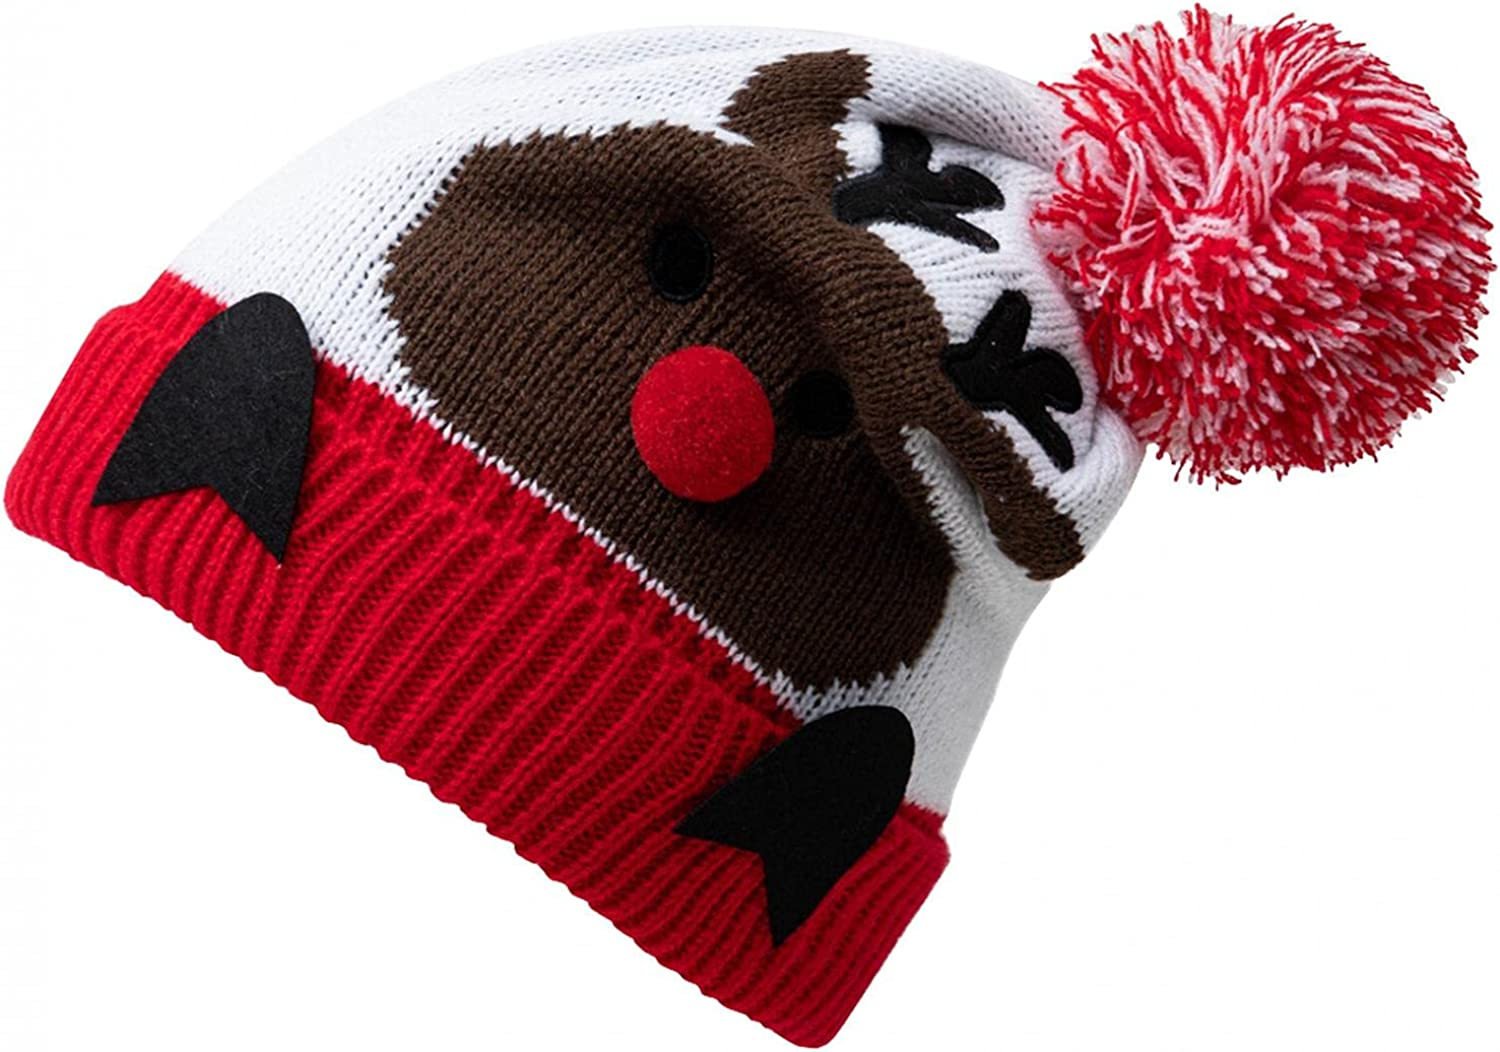 Limsea Christmas Caps for Women Autumn Winter Thick Lined Warm Knitted Beanie Boys Girls Cute Fur Pom Pom Skully Hats